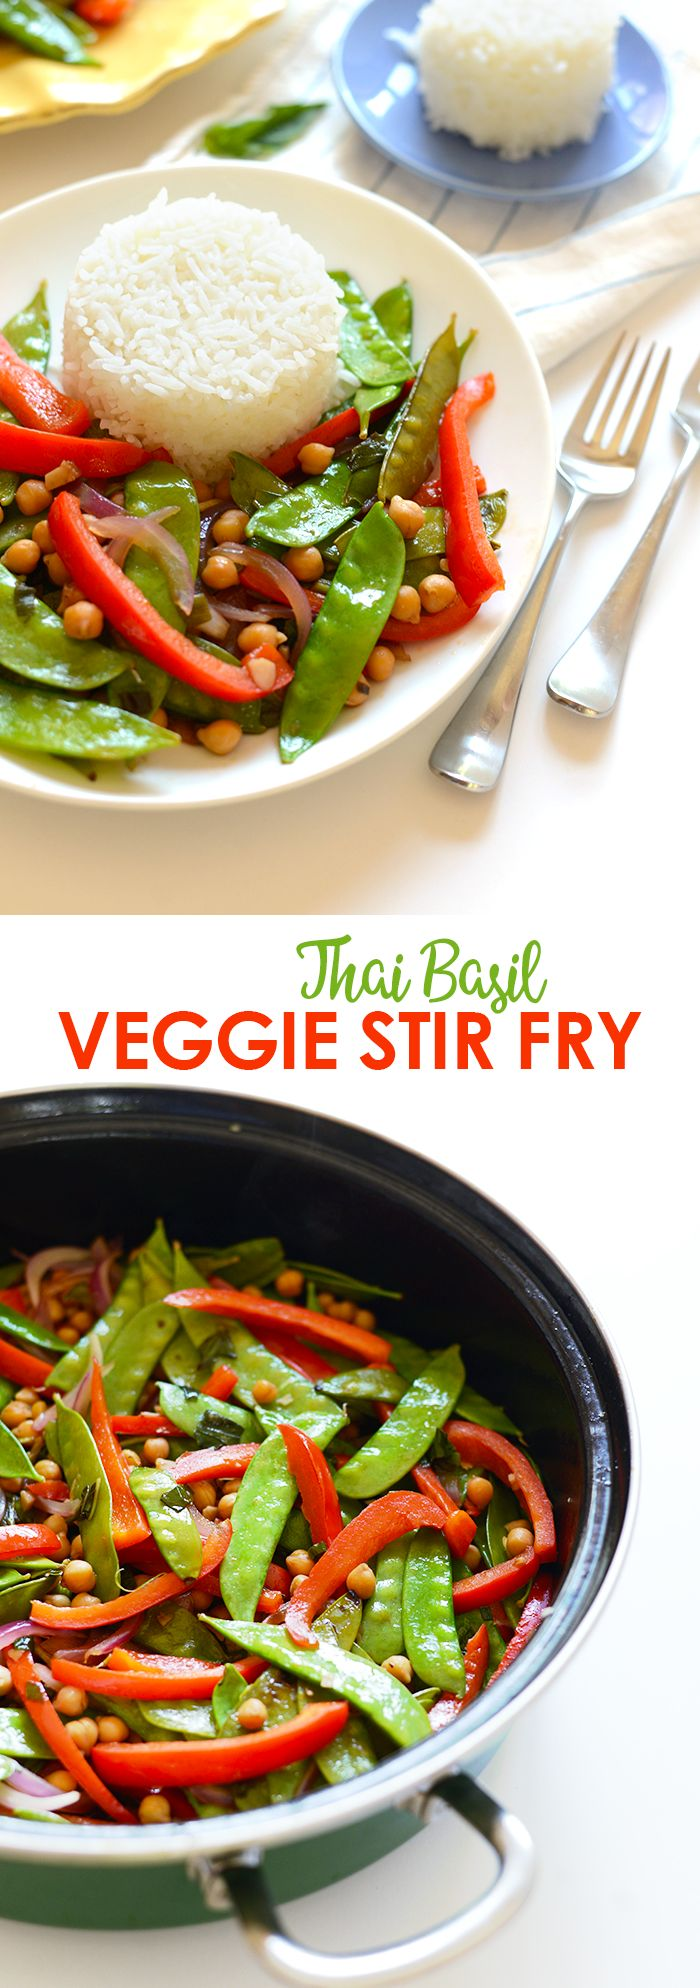 Ditch the meat and make yourself this delicious vegetarian Thai Basil Veggie Stir Fry with a side of sticky rice for a filling, fresh dinner!